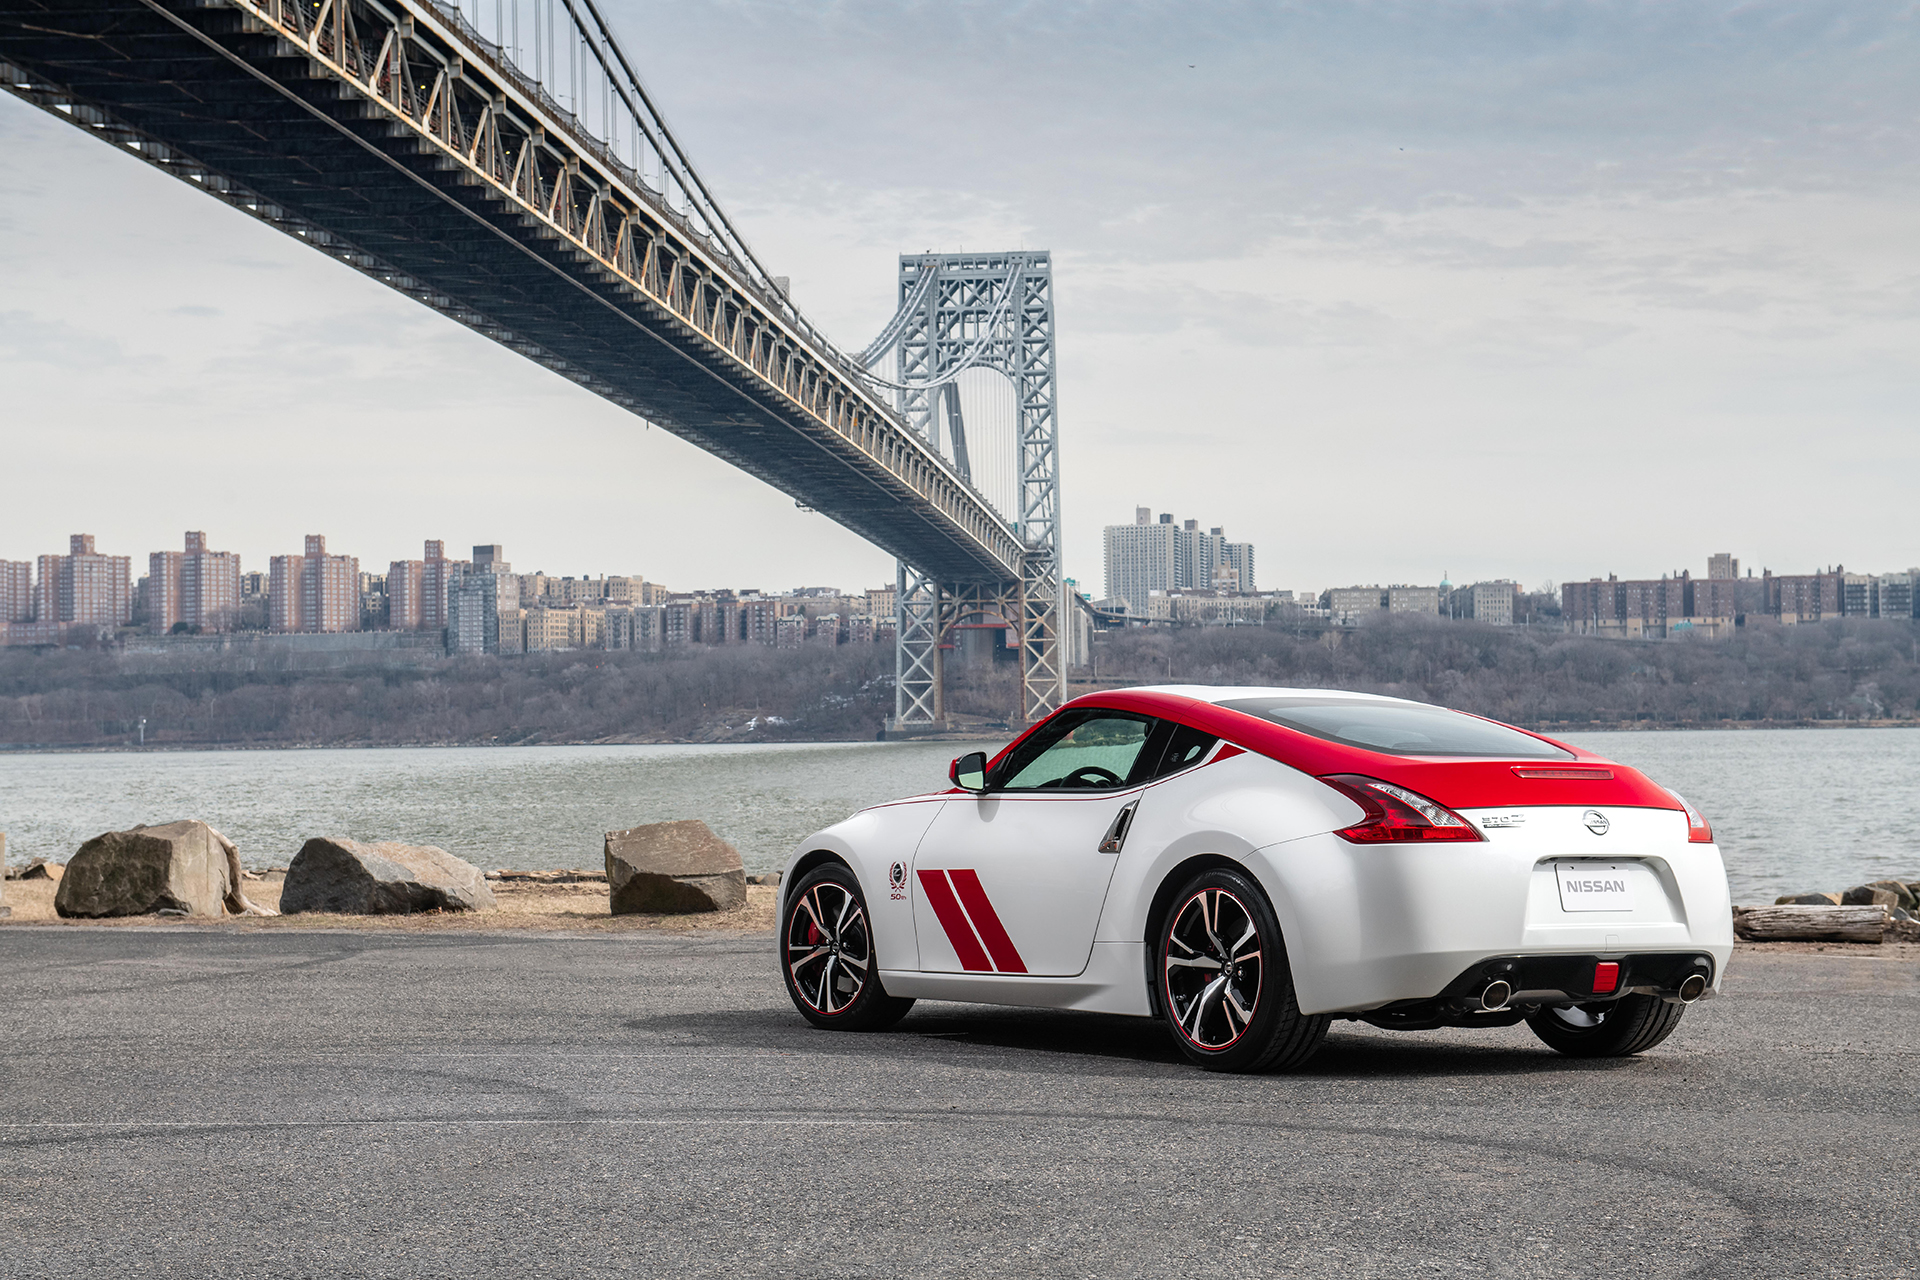 2020 370Z 50th Anniversary Edition: Honoring Half a Century